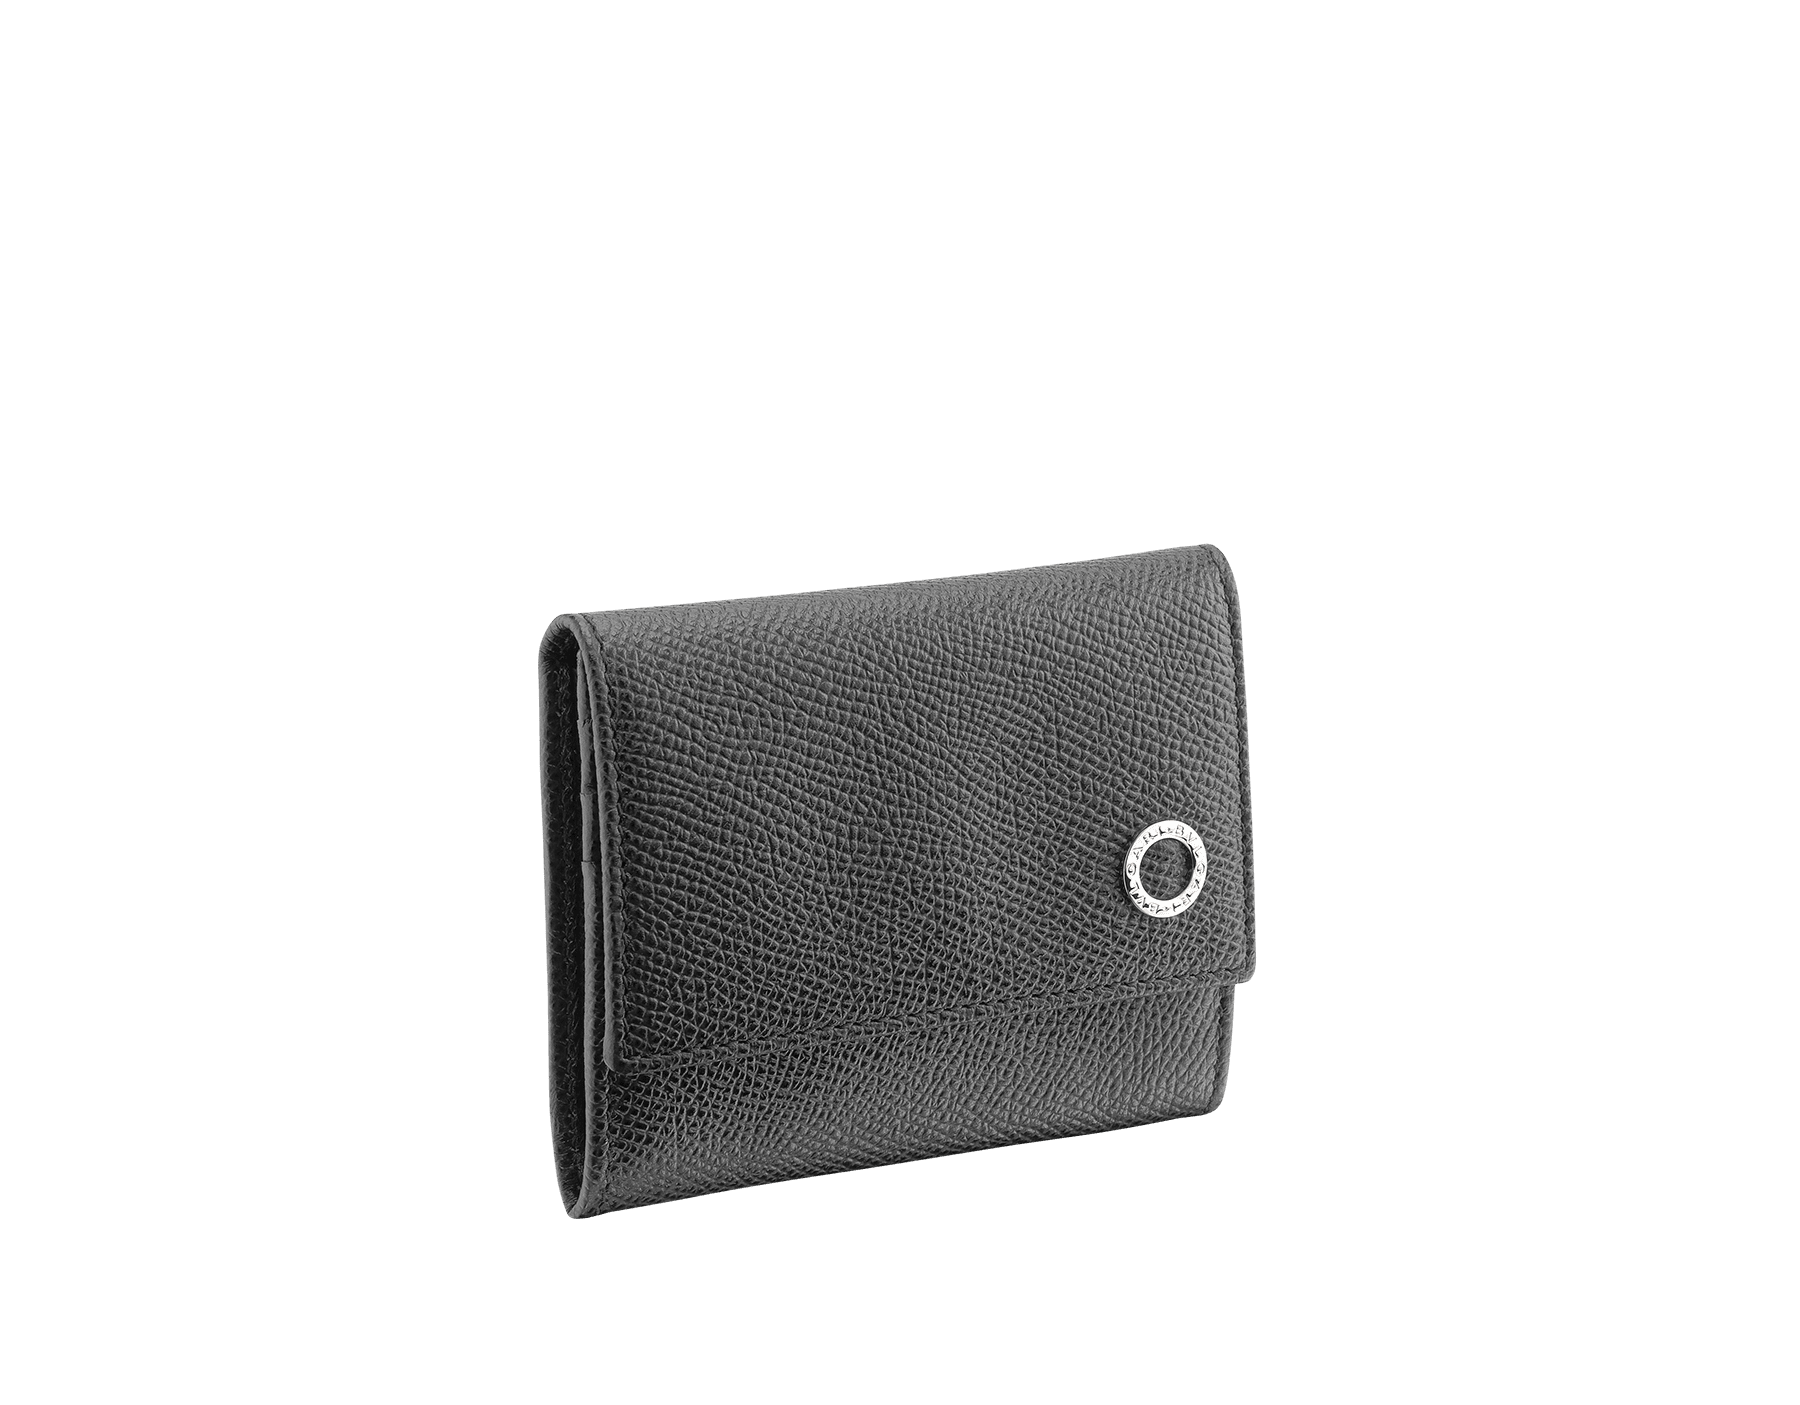 Coin and credit card holder in denim sapphire grain calf leather with brass palladium plated BVLGARI BVLGARI motif. BBM-COIN-CC-HOLDER image 1